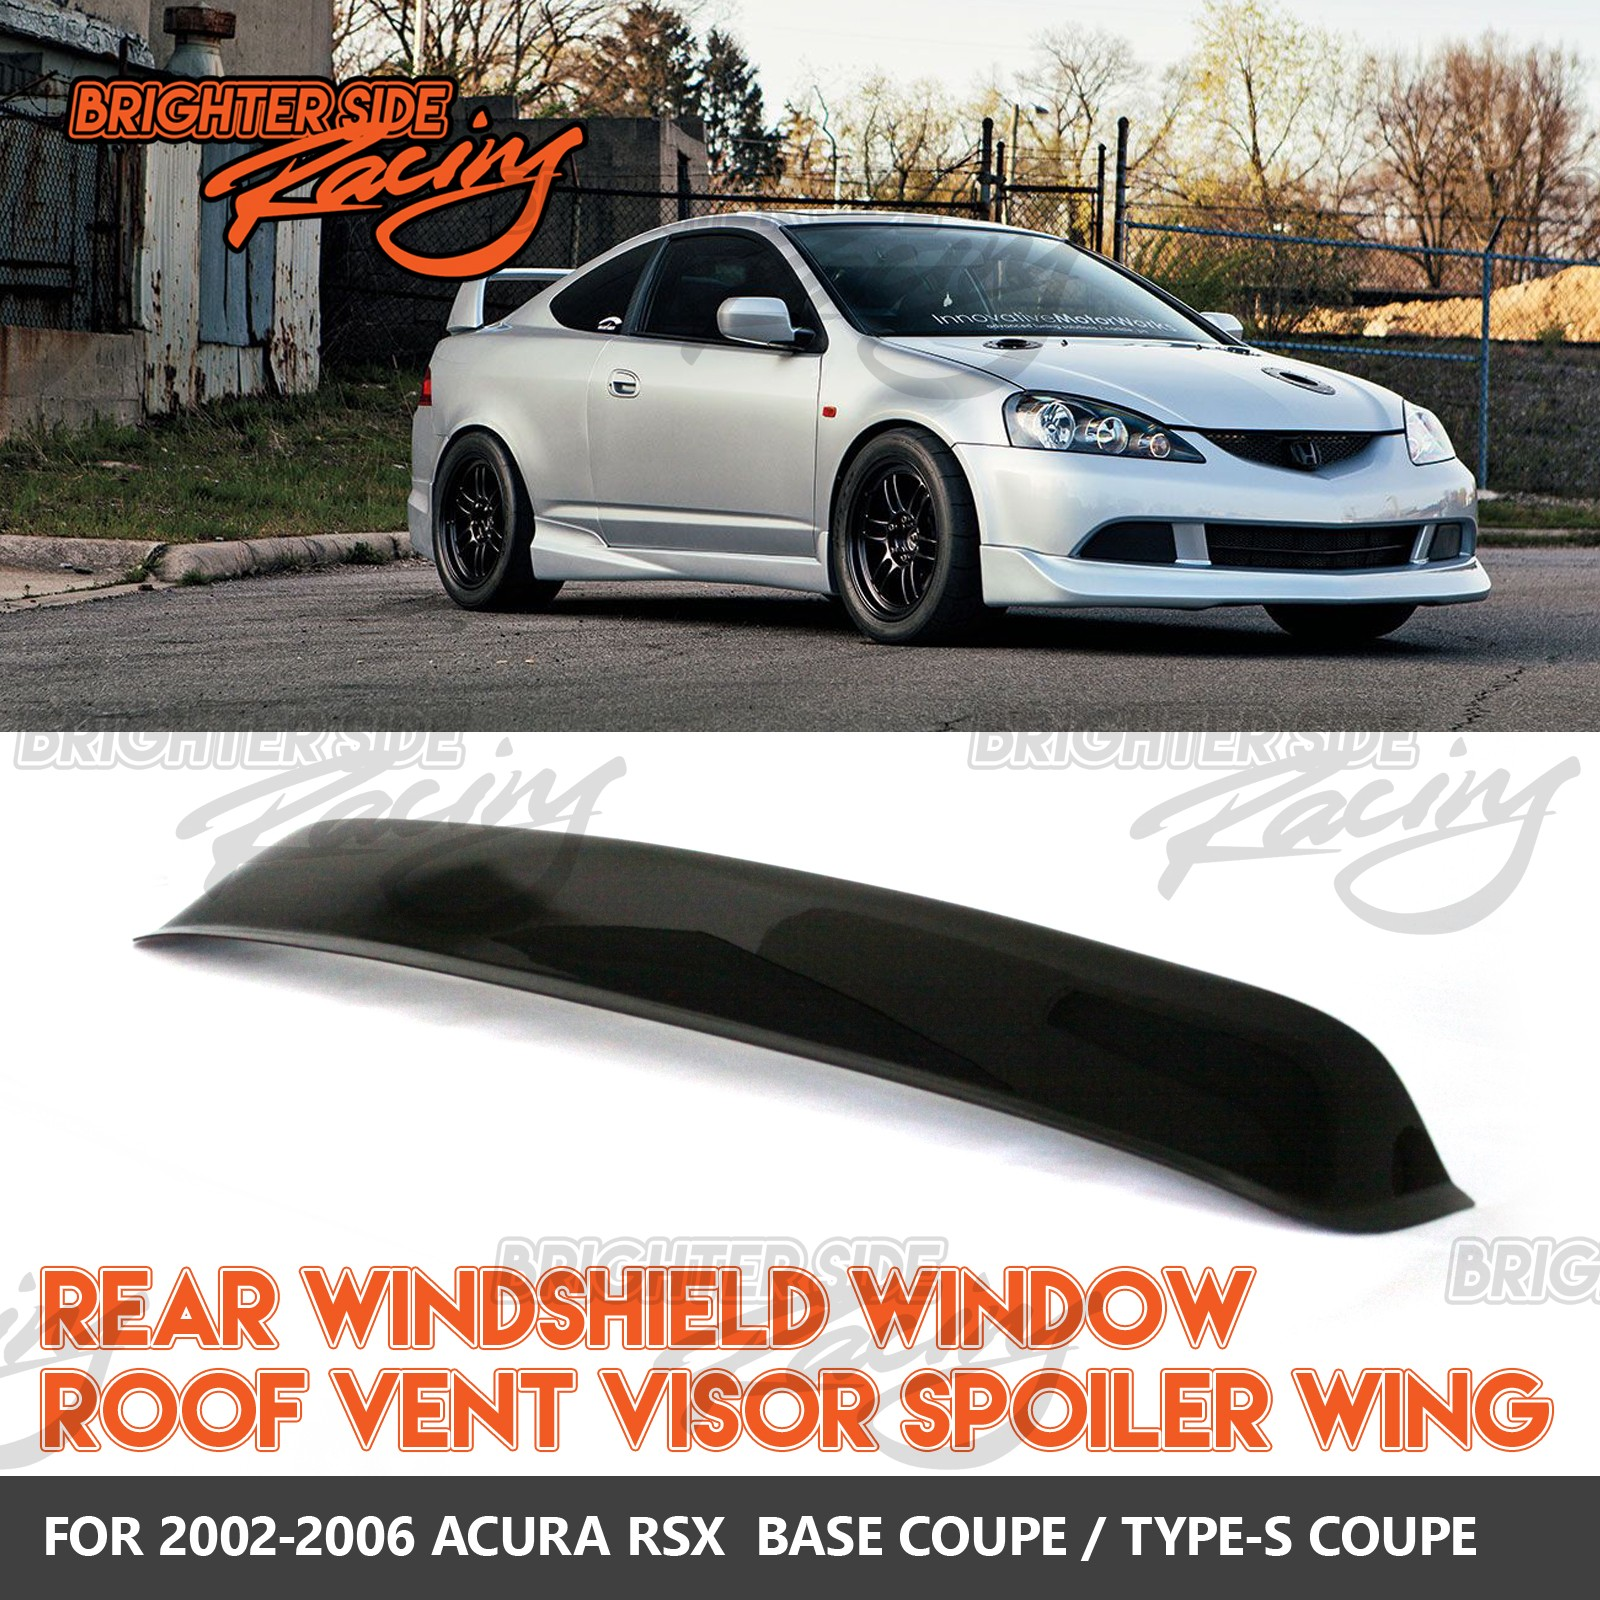 Acura Tl Rear Window Roof Spoiler 700814234898 Vehicles: FITS 02-06 ACURA RSX 1PC REAR WINDOW ROOF VISORS SUN GUARD